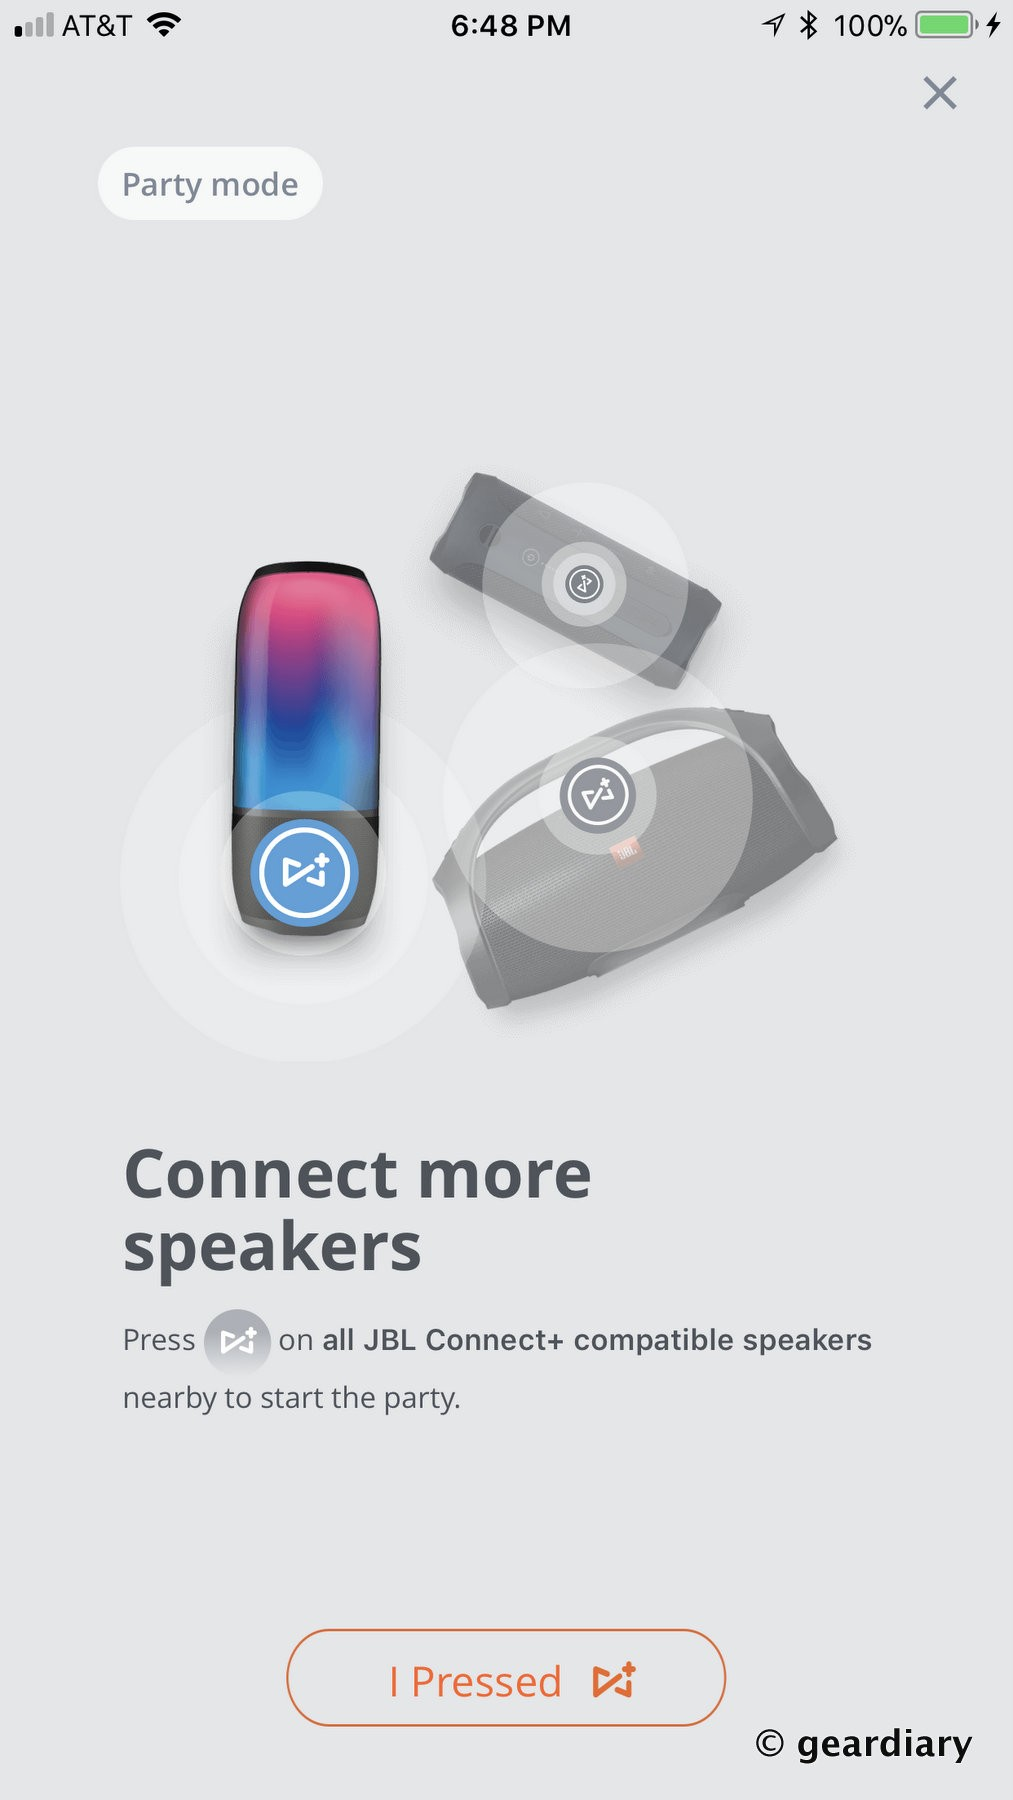 04-JBL Pulse 3 in JBL Connect App-003 – GearDiary